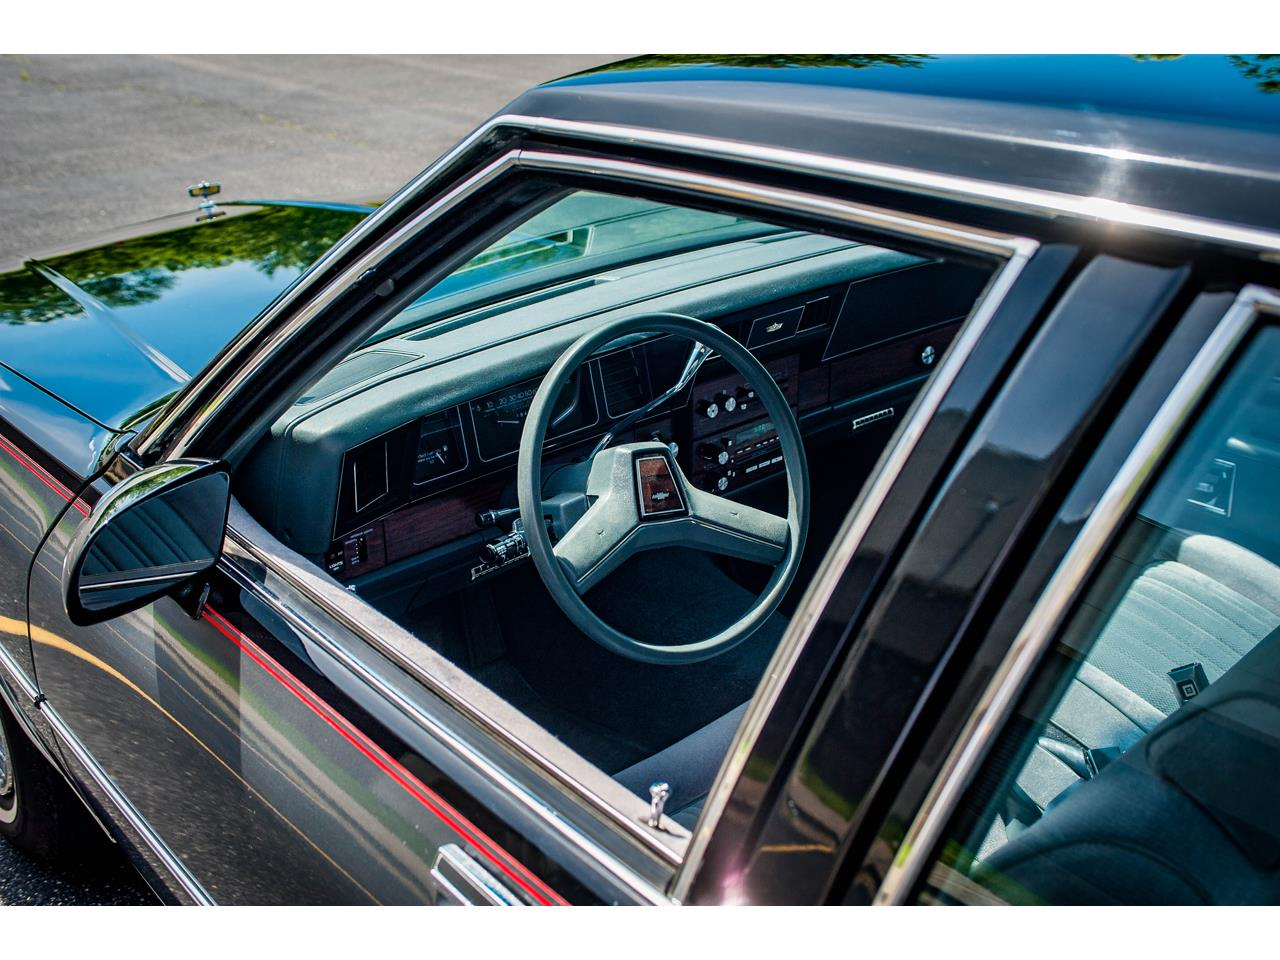 Large Picture of 1989 Caprice located in O'Fallon Illinois - $17,995.00 Offered by Gateway Classic Cars - St. Louis - QB9K